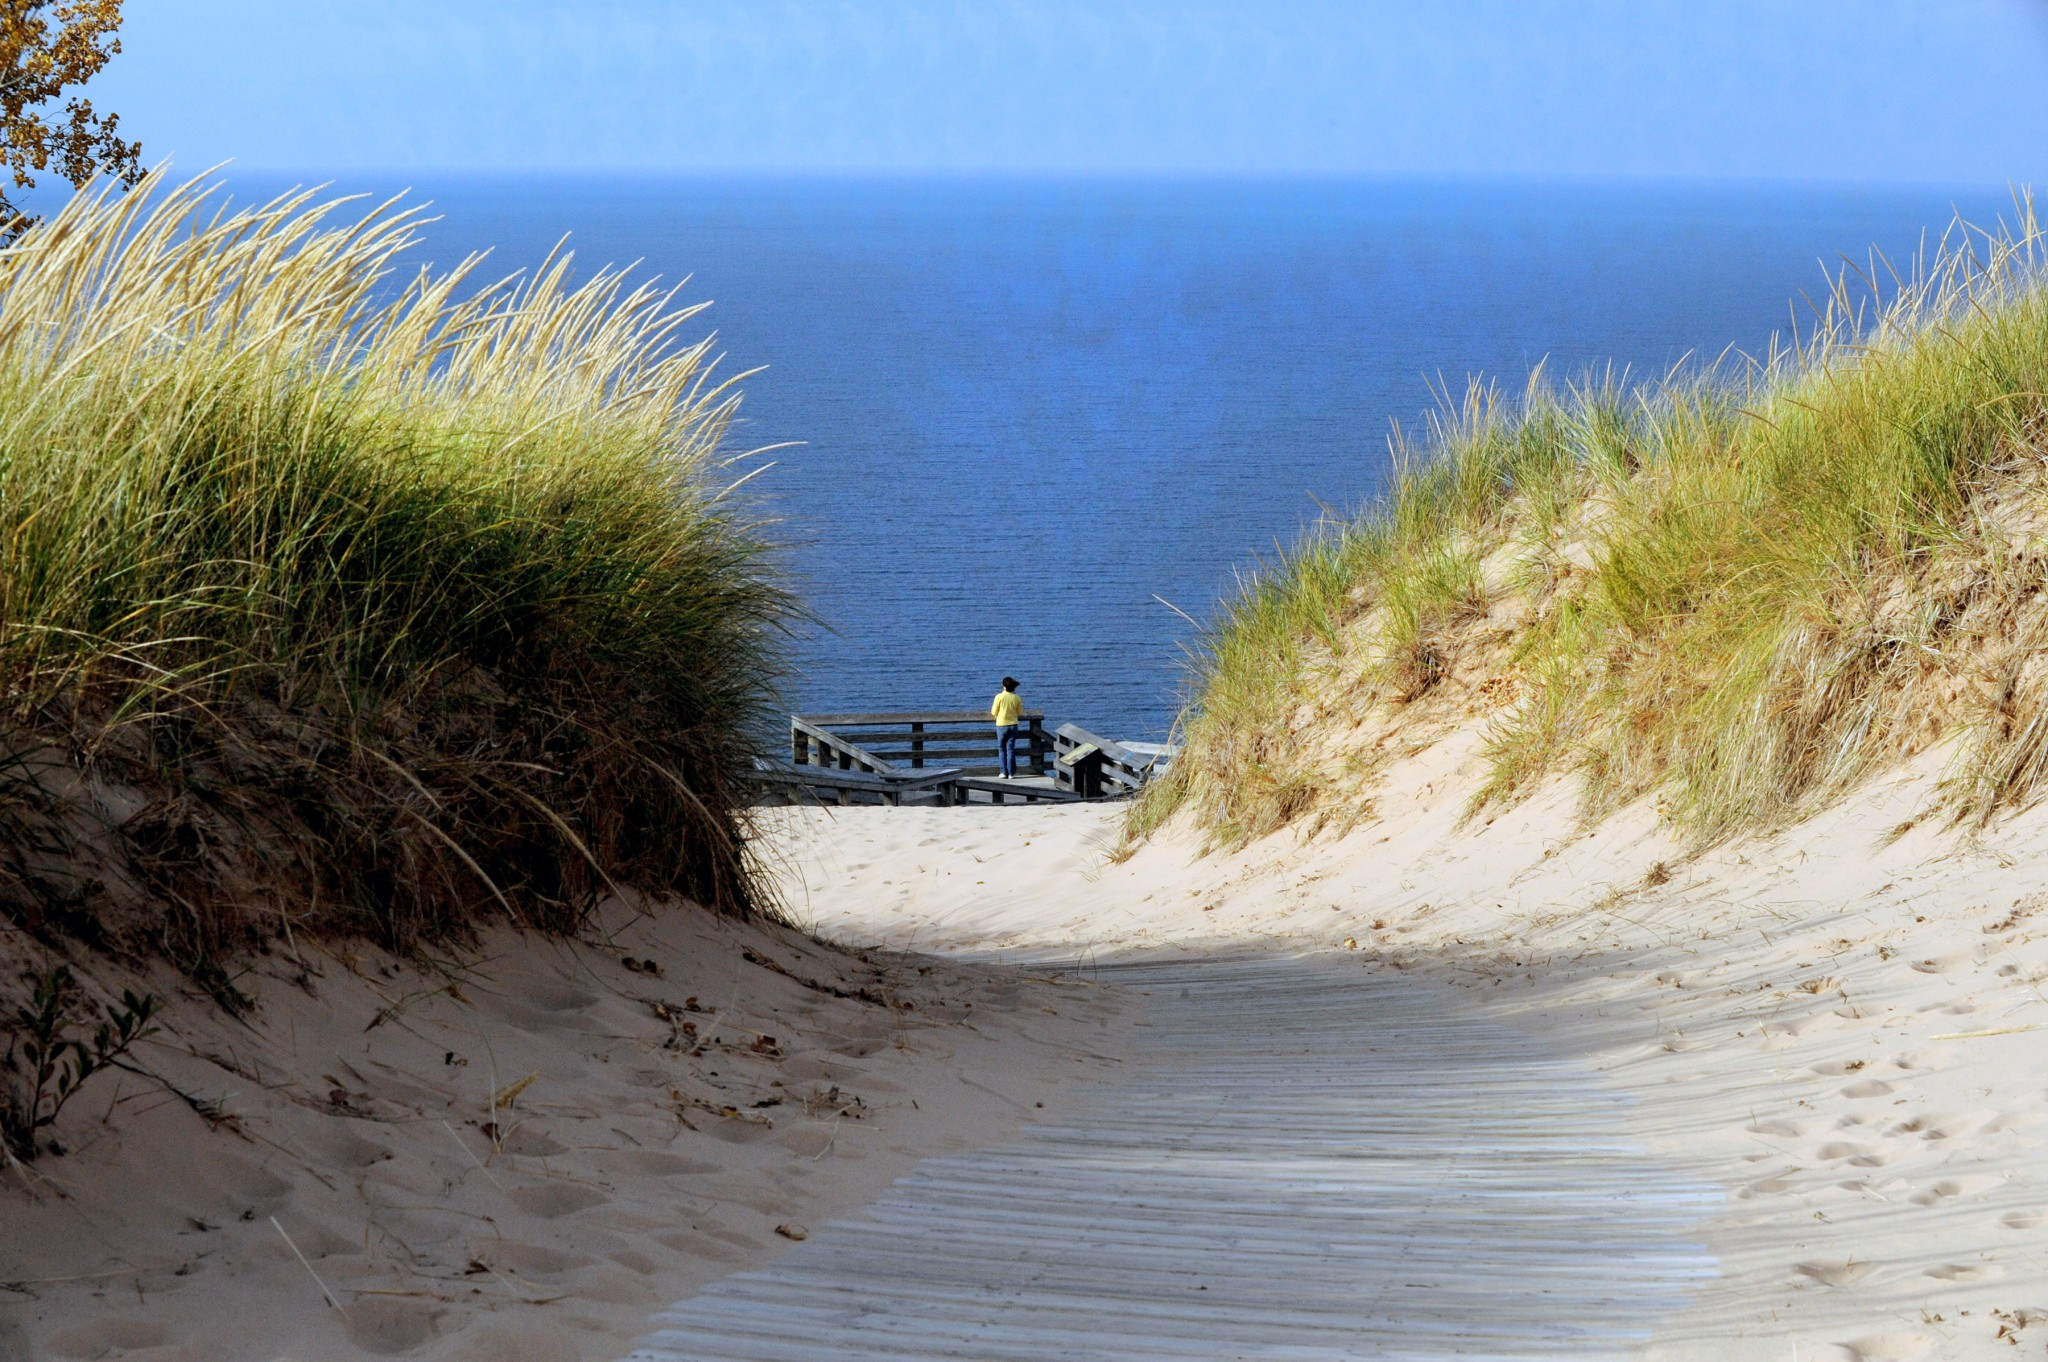 The Leelanau Peninsula is a prime example of an excellent close-to-home destination. Beautiful scenery, great accommodations and so much to experience. The dunes are immense; the overlooks and their open view of the blue waters of Lake Michigan are spectacular. (Photo by Art Weber)